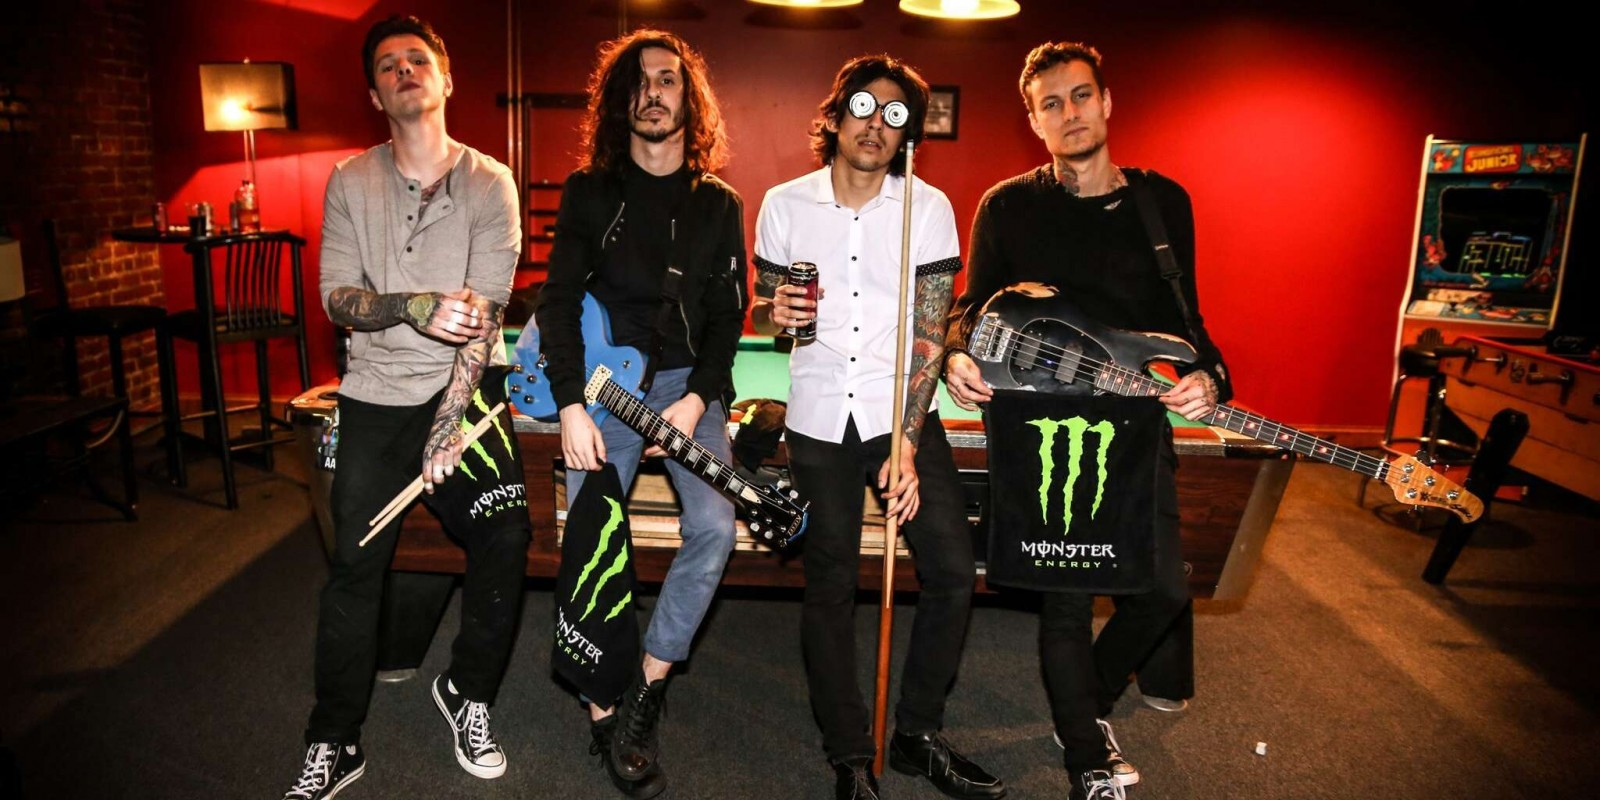 crown the empire monster energy promo photo